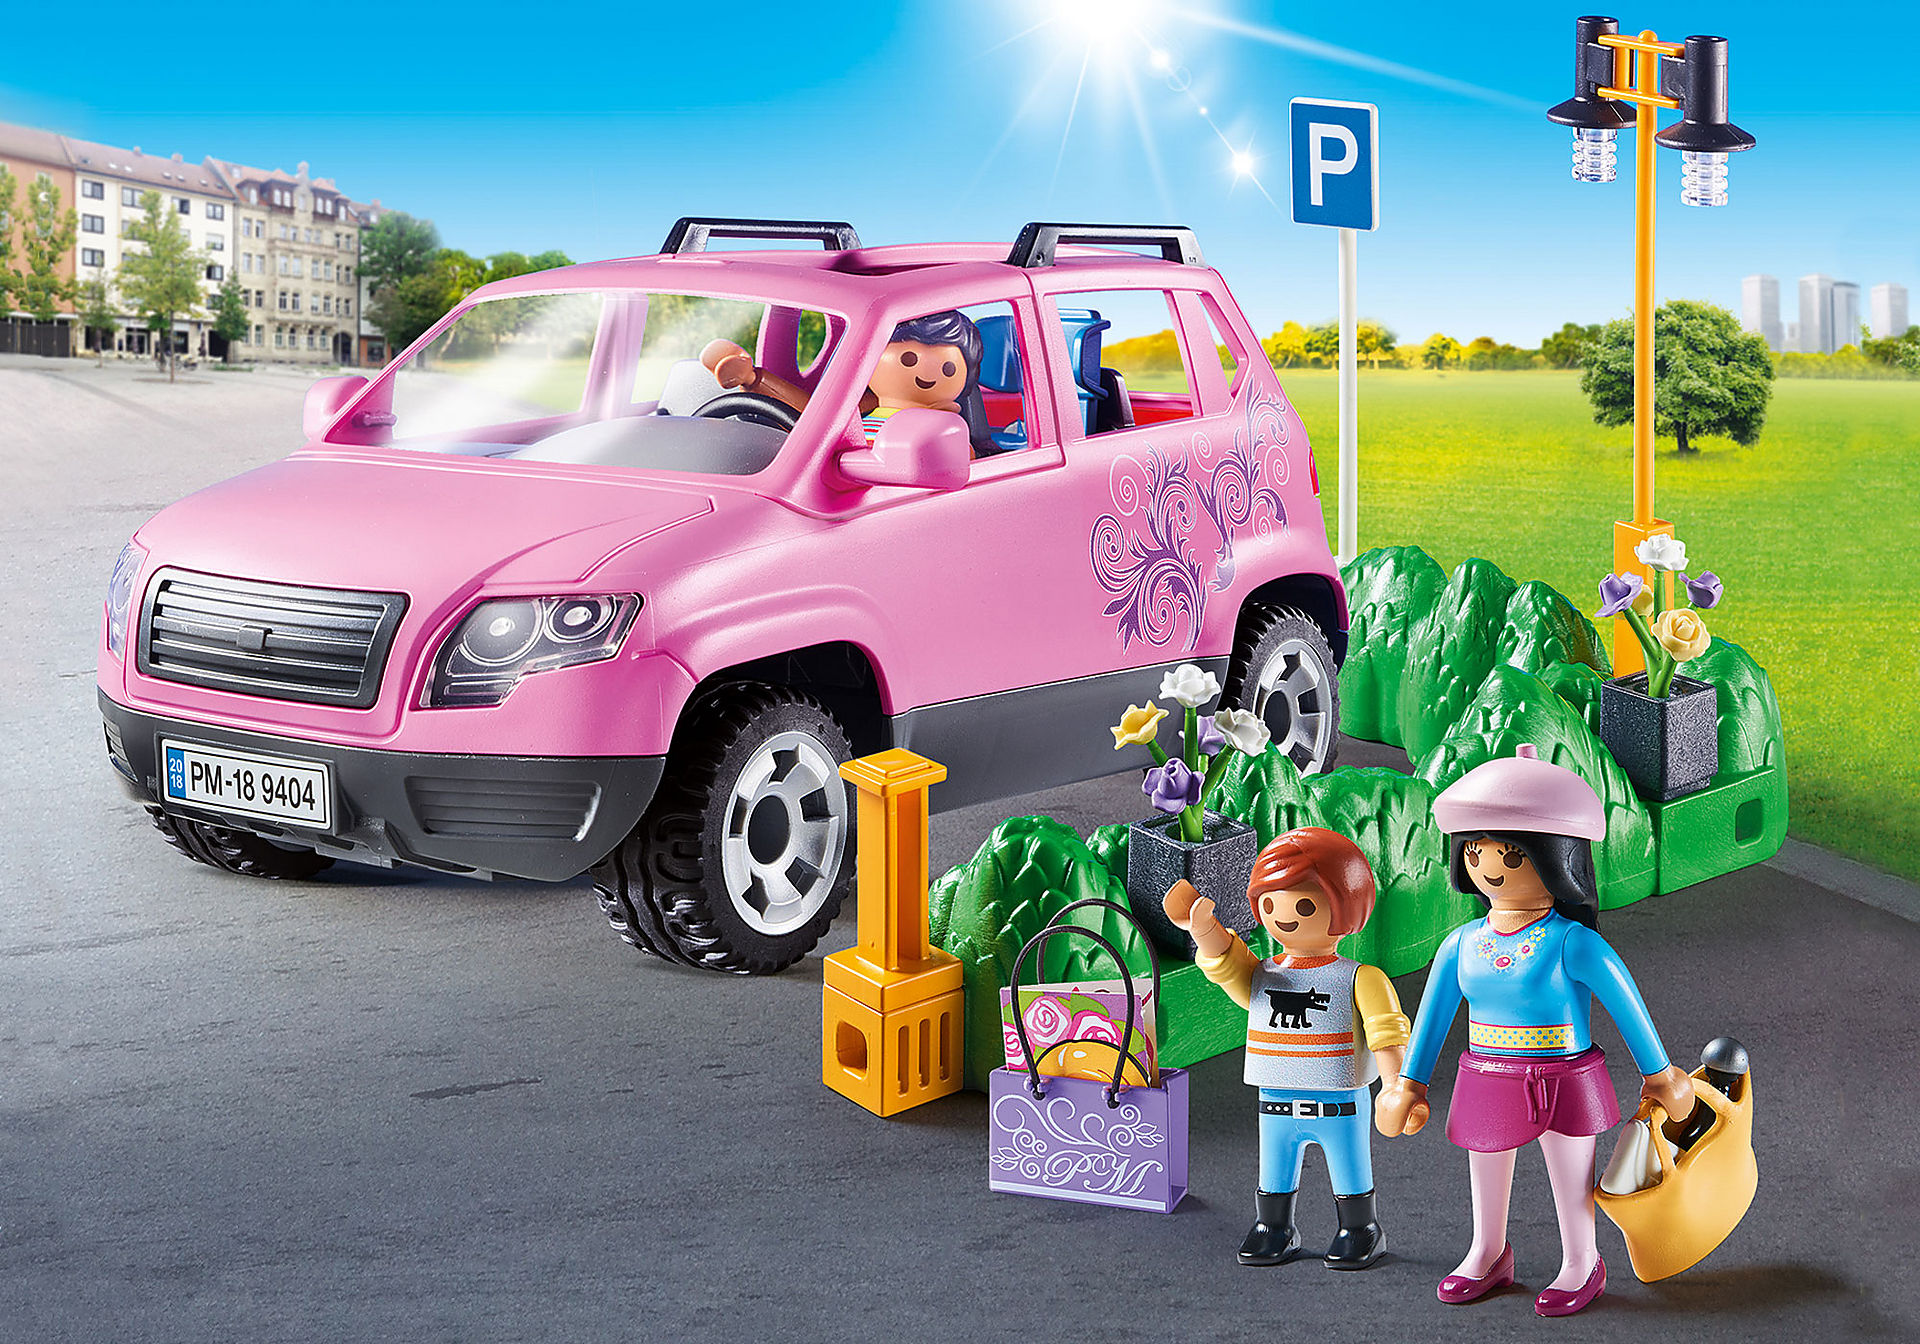 http://media.playmobil.com/i/playmobil/9404_product_detail/Family Car with Parking Space